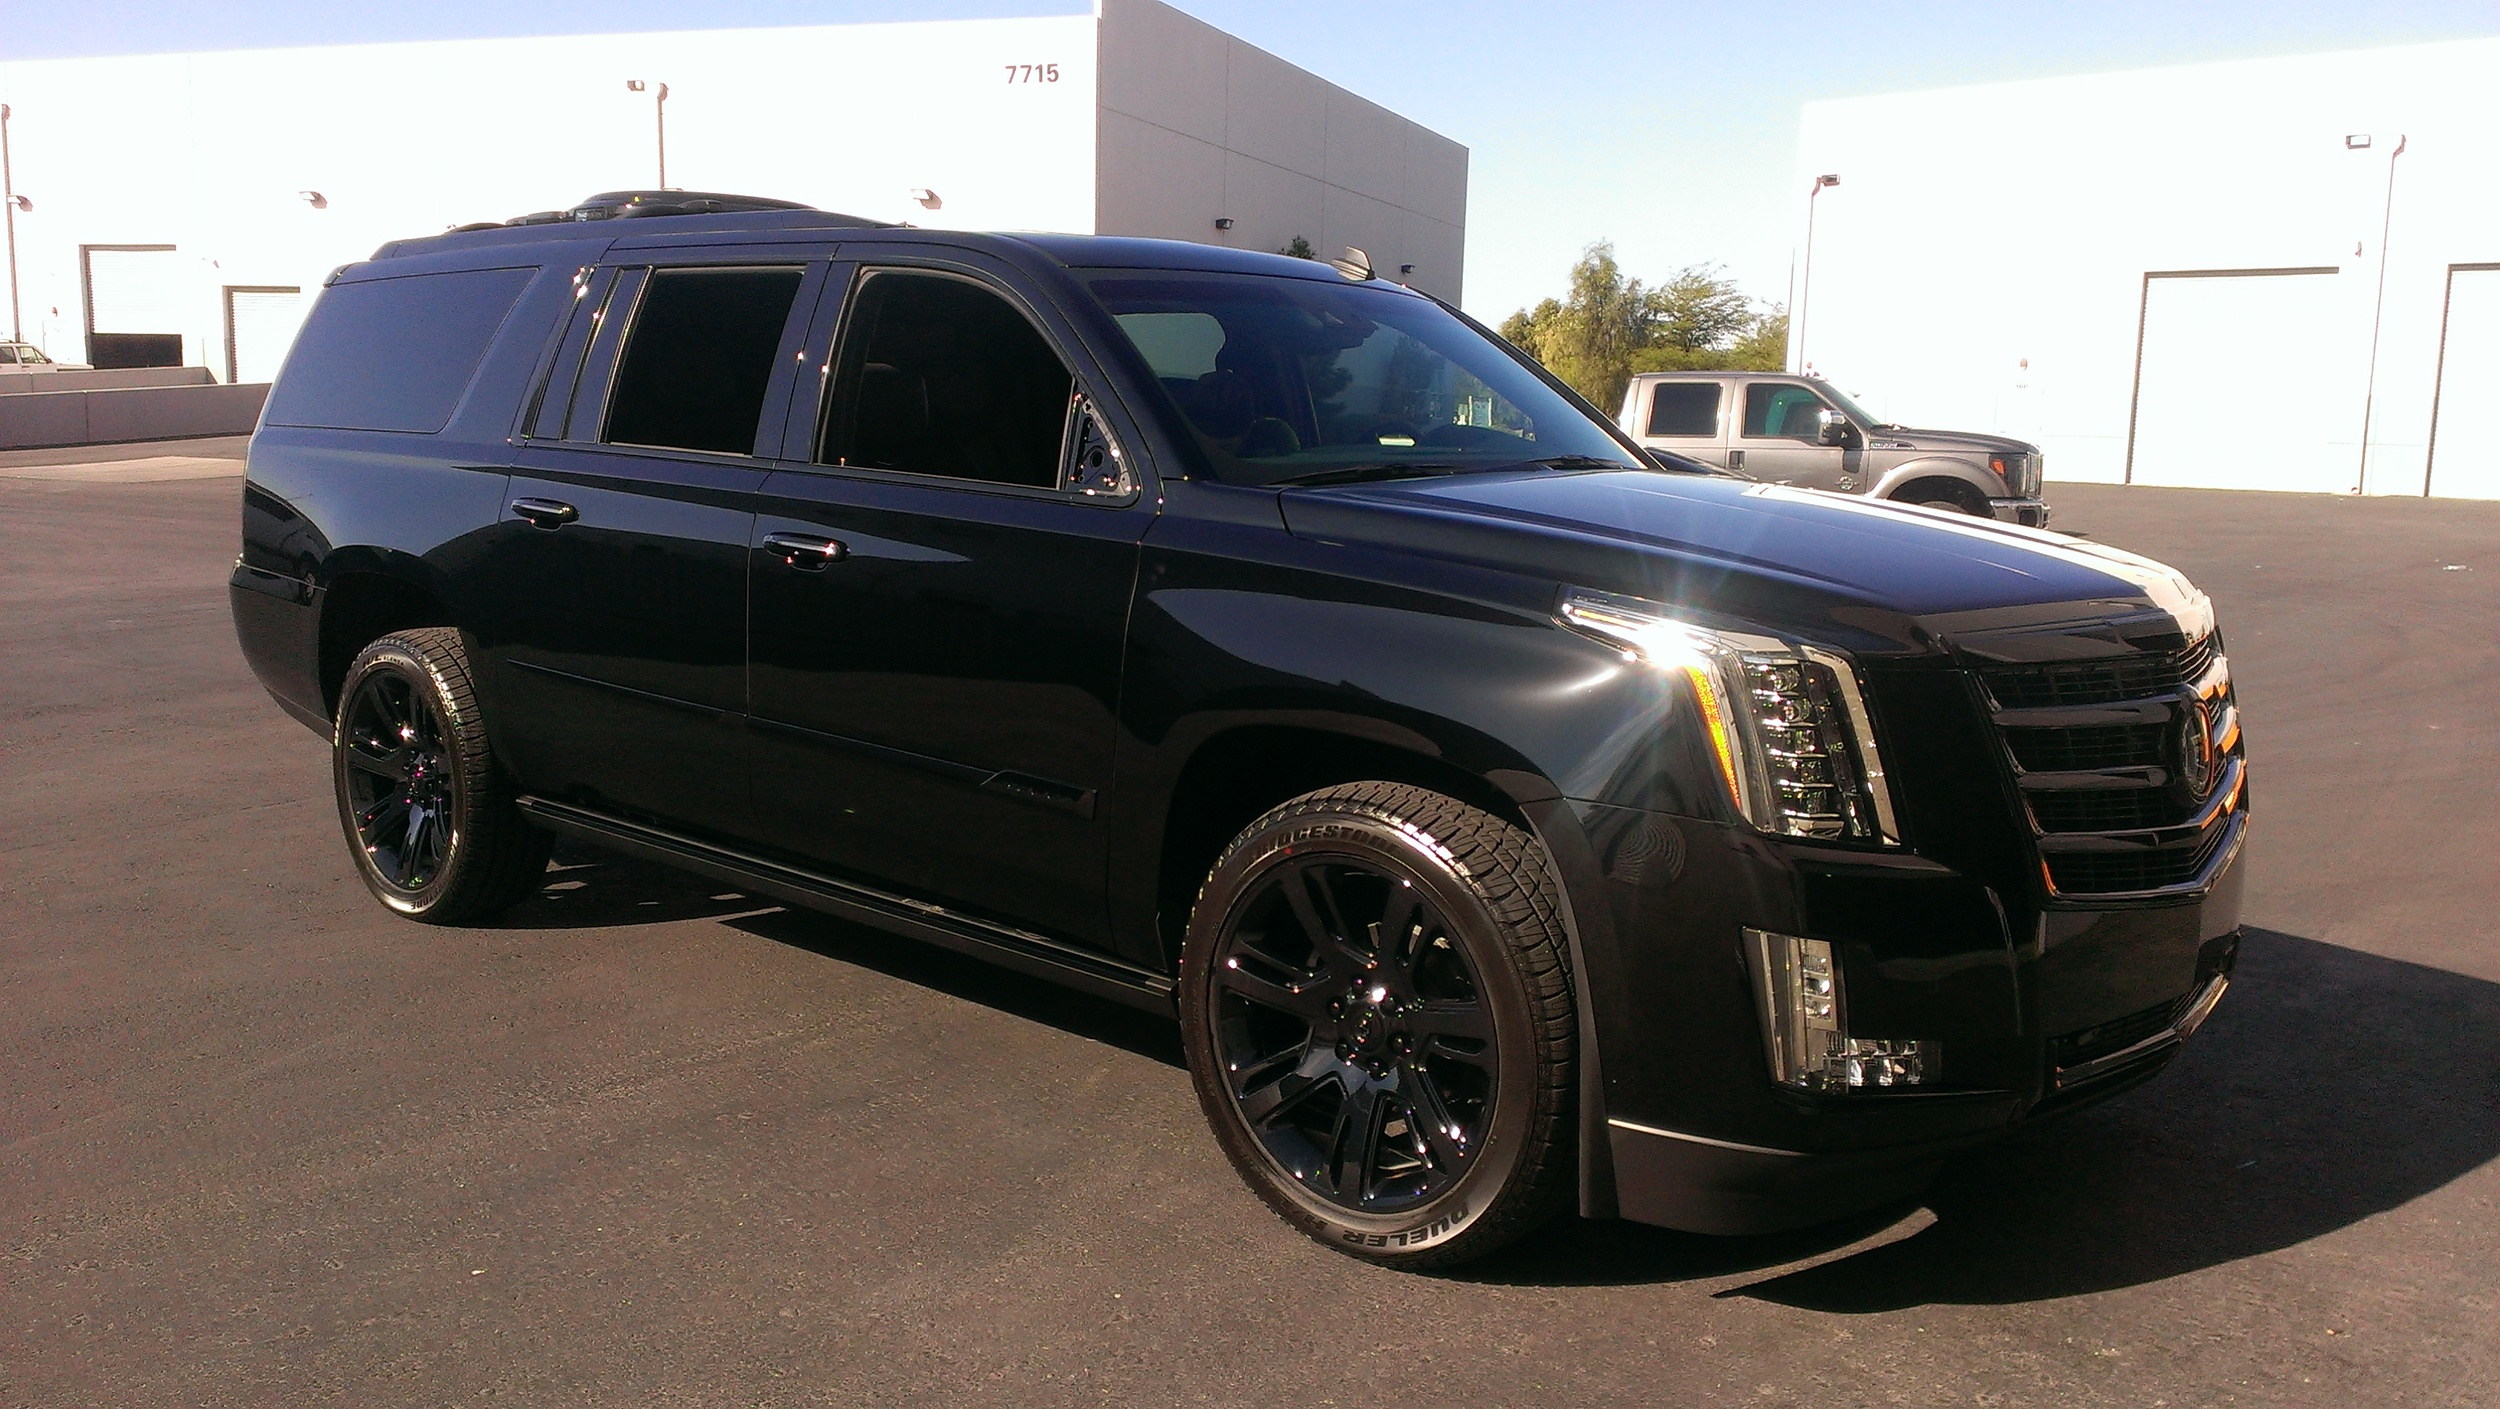 Cadillac Escalade - Gloss Black Chrome Delete — Incognito Wraps